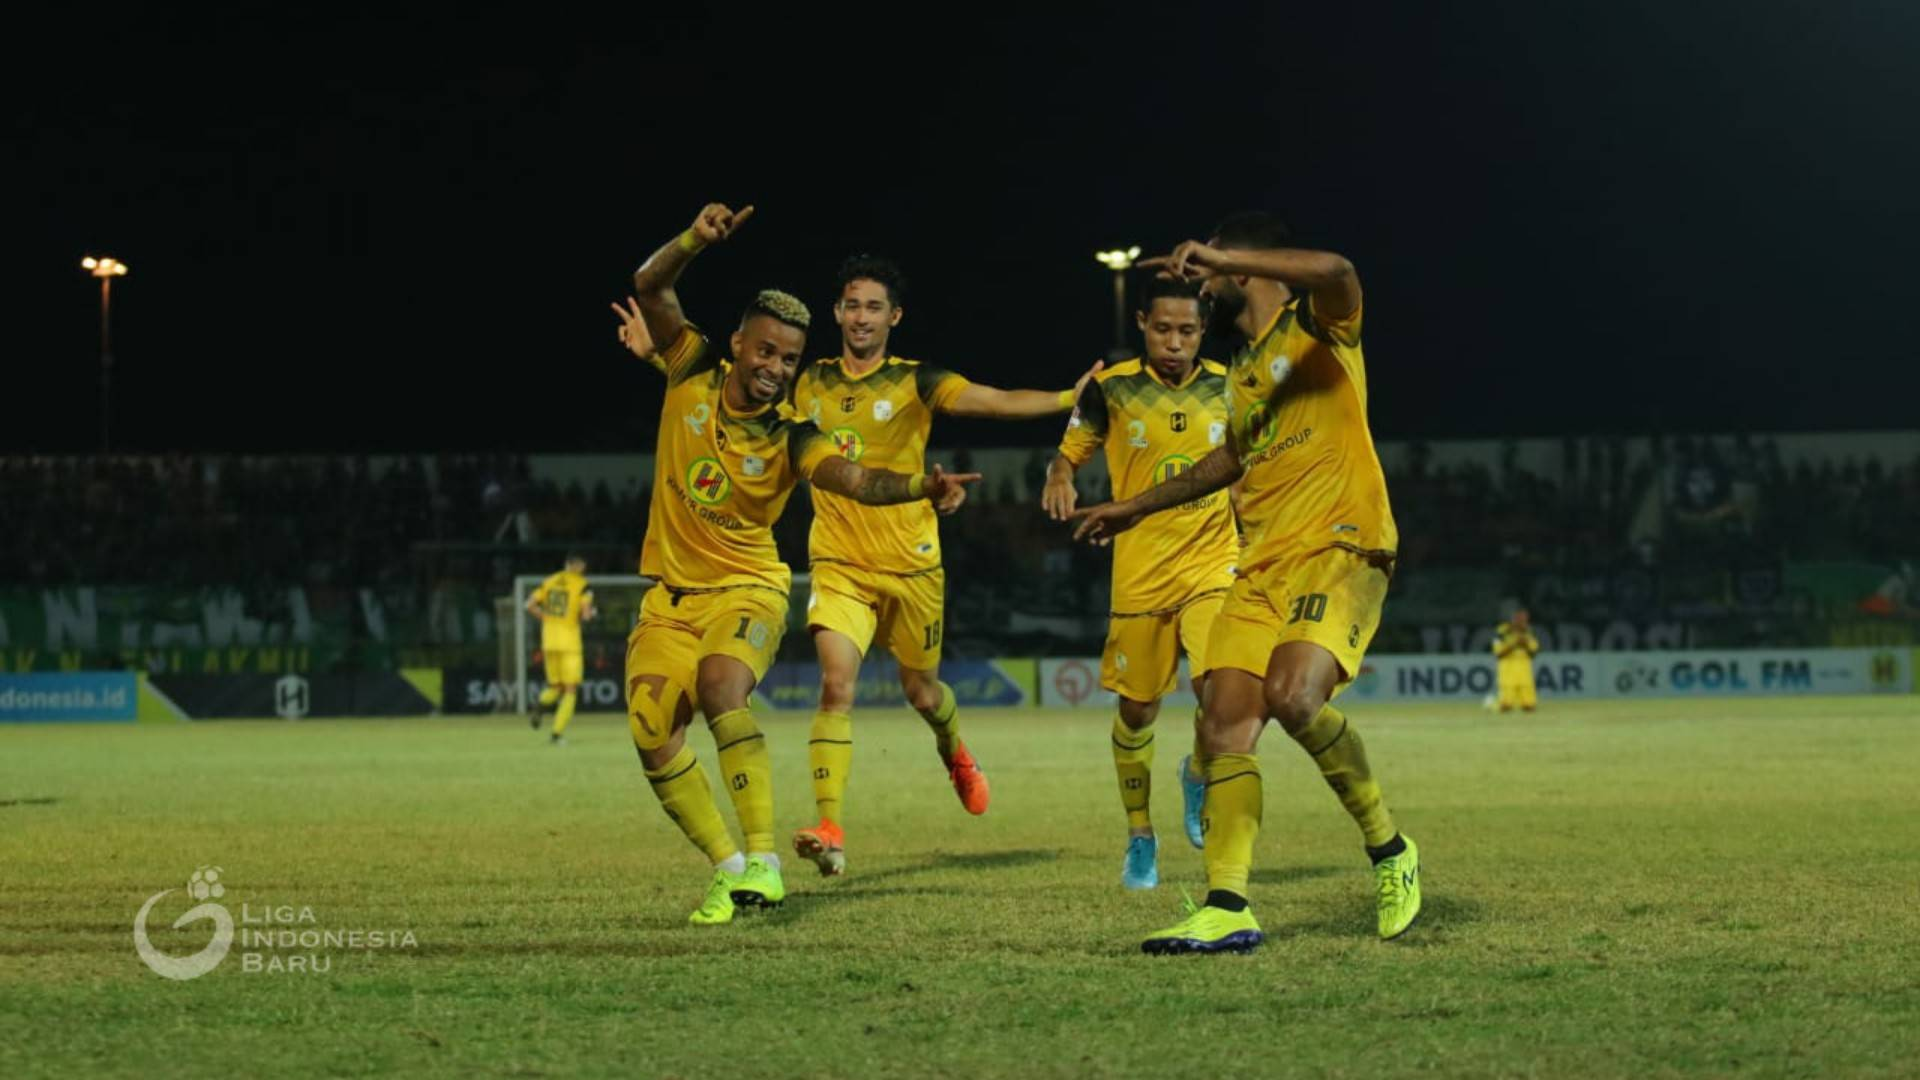 Rafael Silva Helps Barito Win, Bhayangkara and Persela Draw